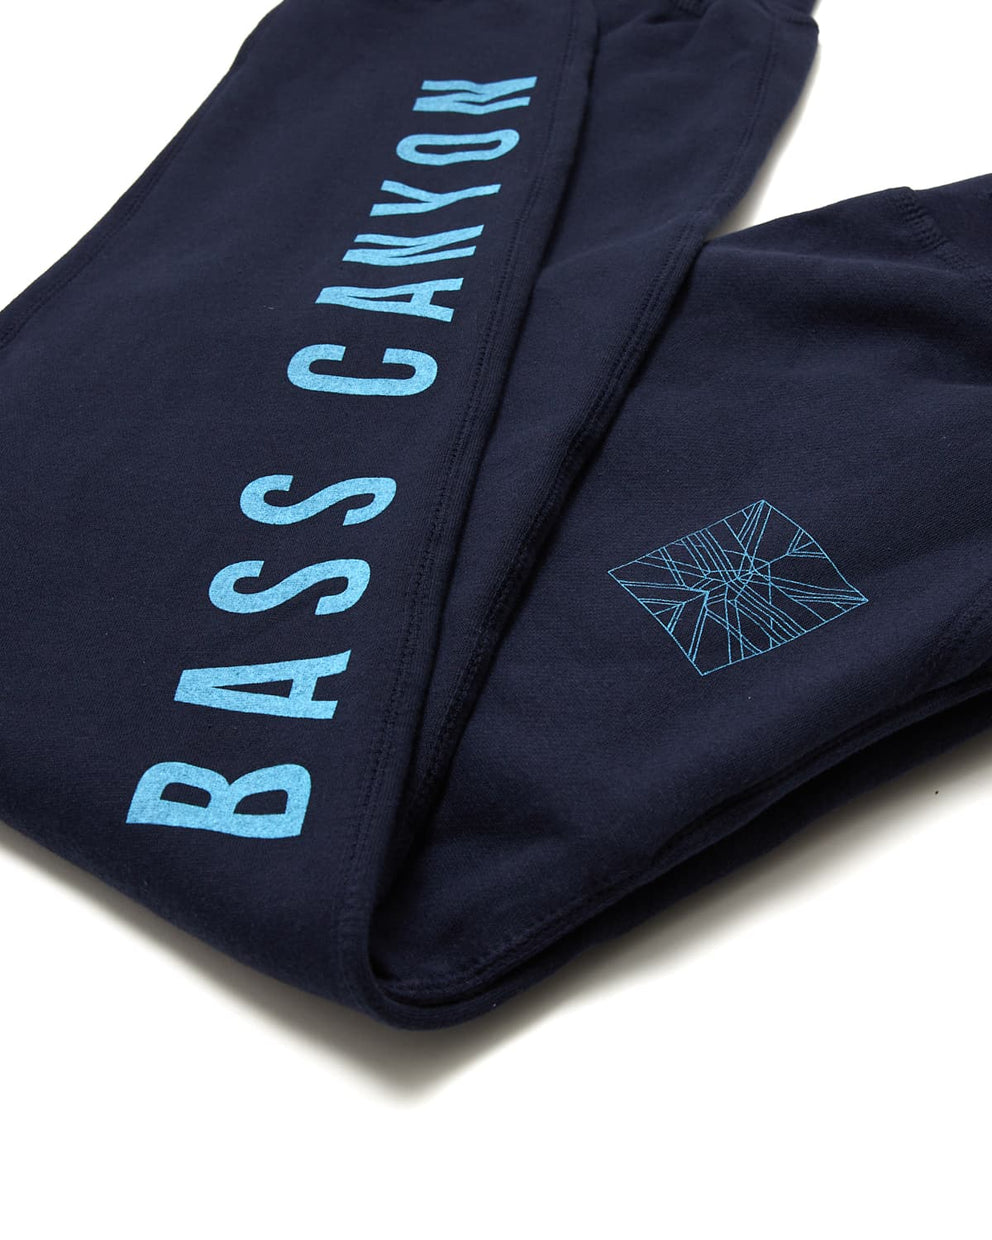 Official Bass Canyon Jogger Sweatpants